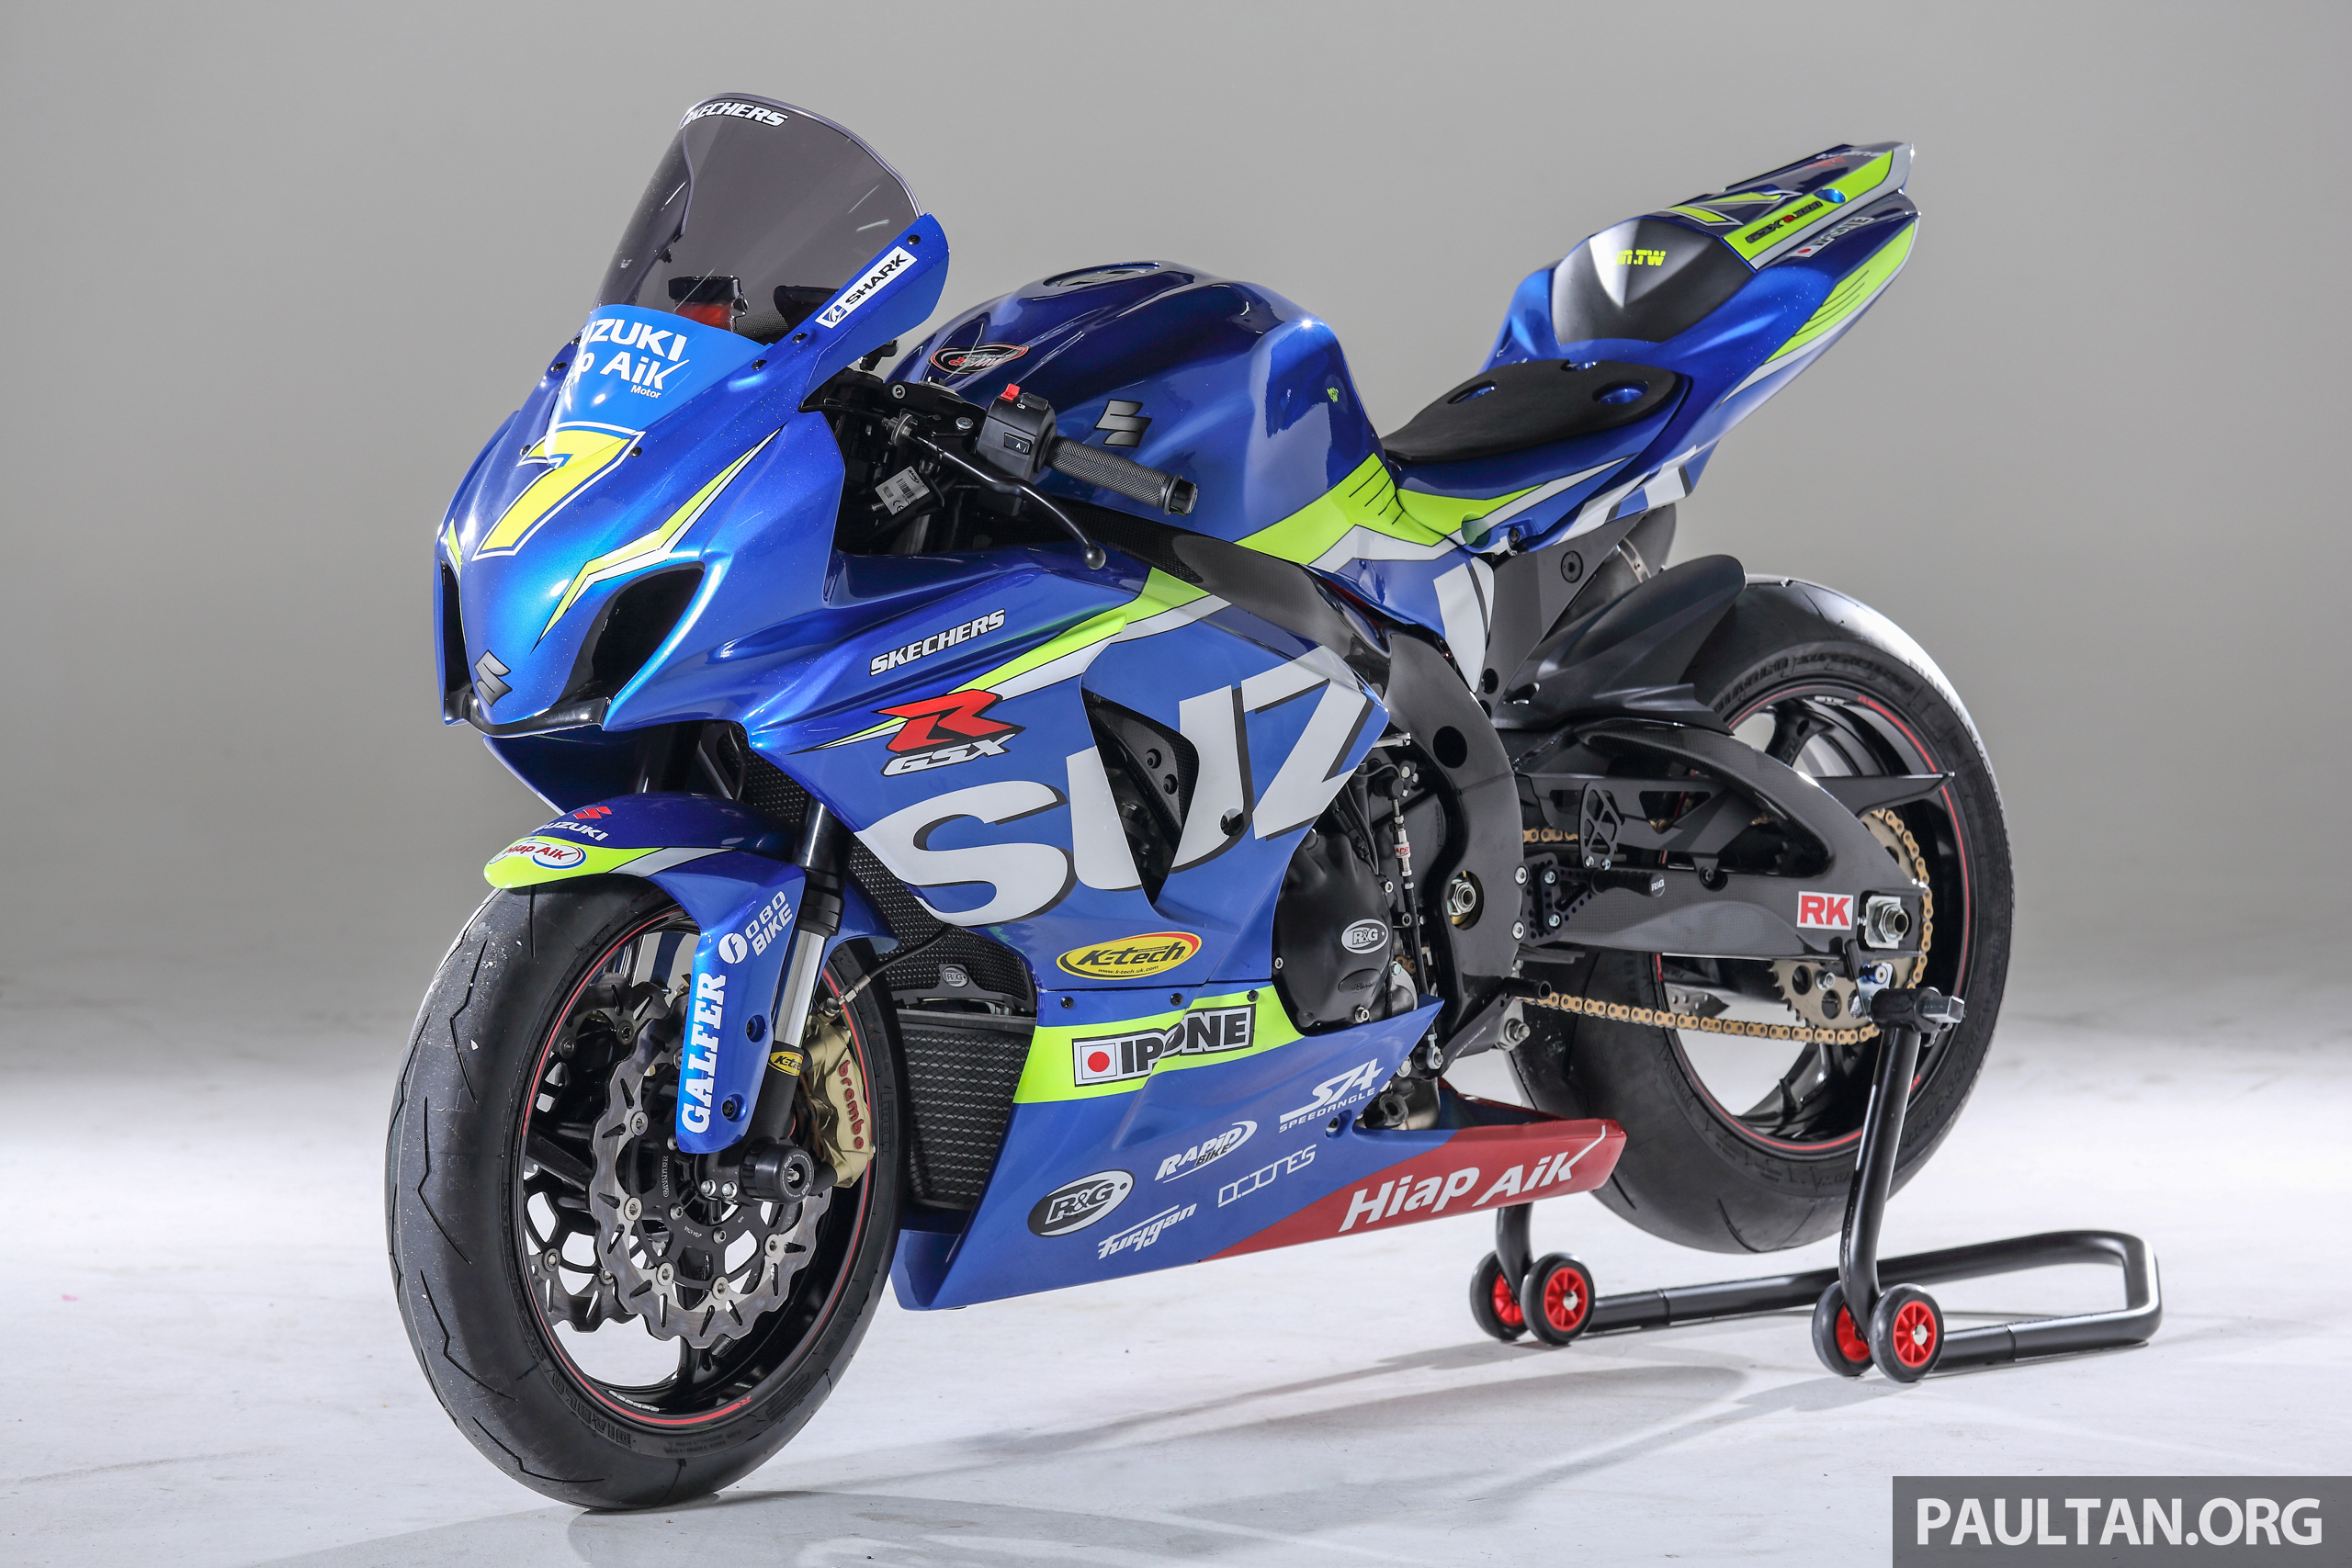 FEATURE: Setting up a Superbike race machine – Suzuki GSX-R1000 L5